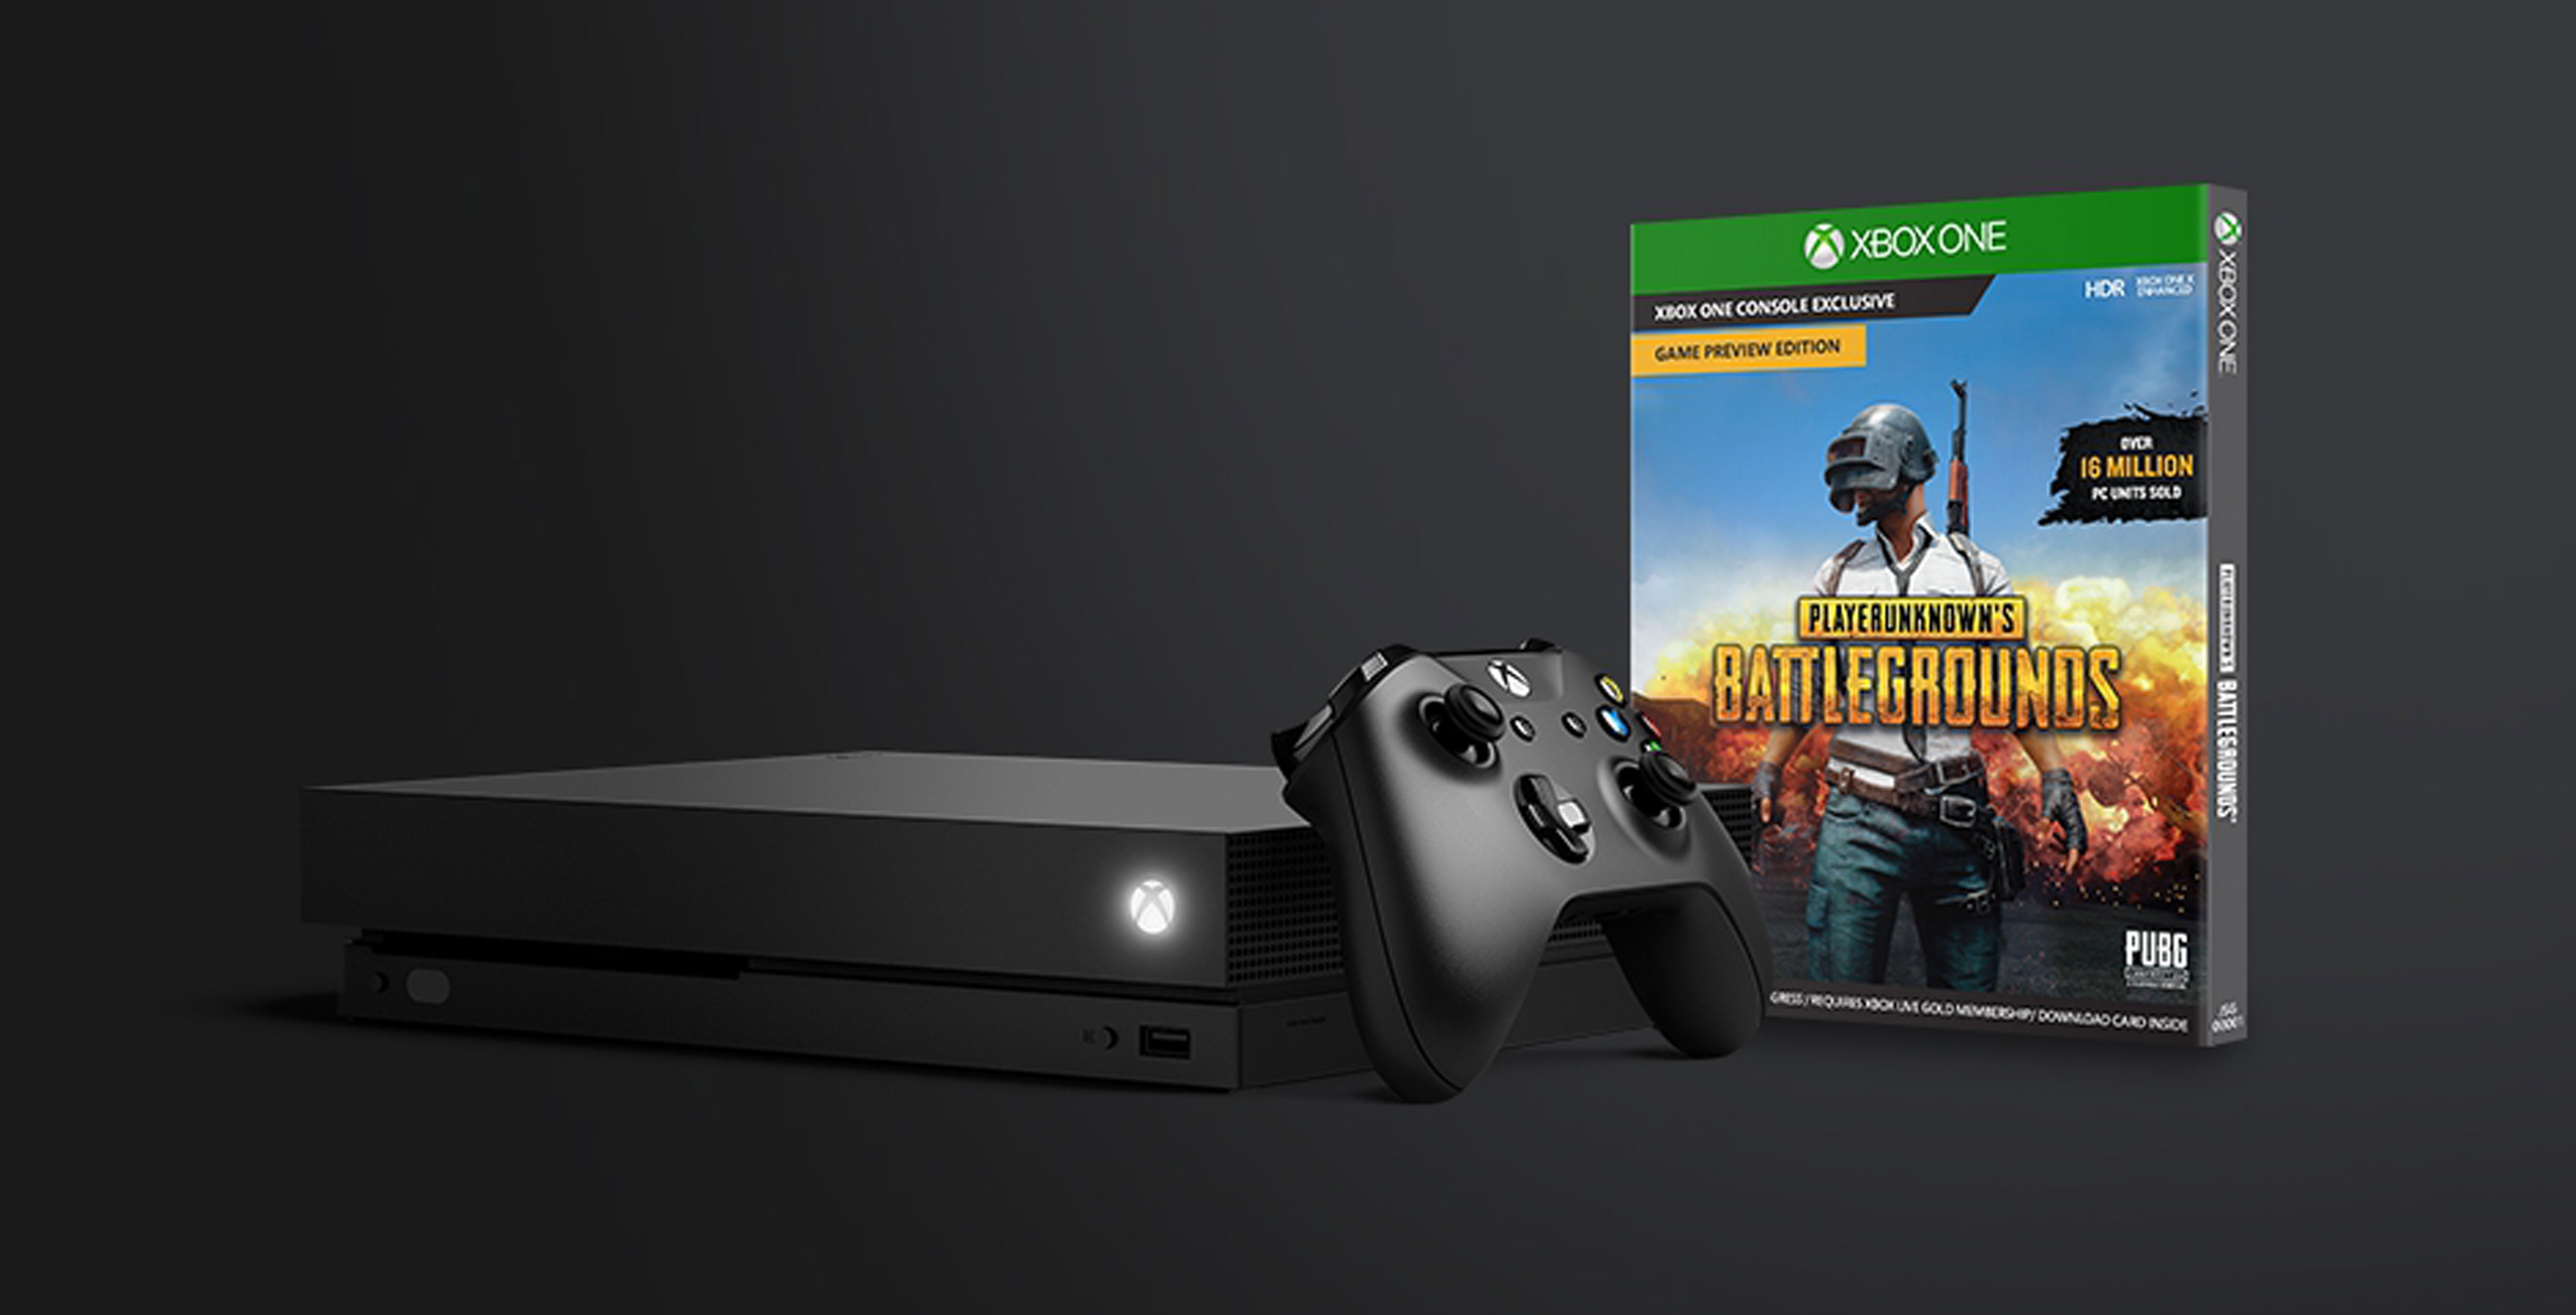 Celebrating over 4 Million PlayerUnknown's Battlegrounds Players on Xbox One!